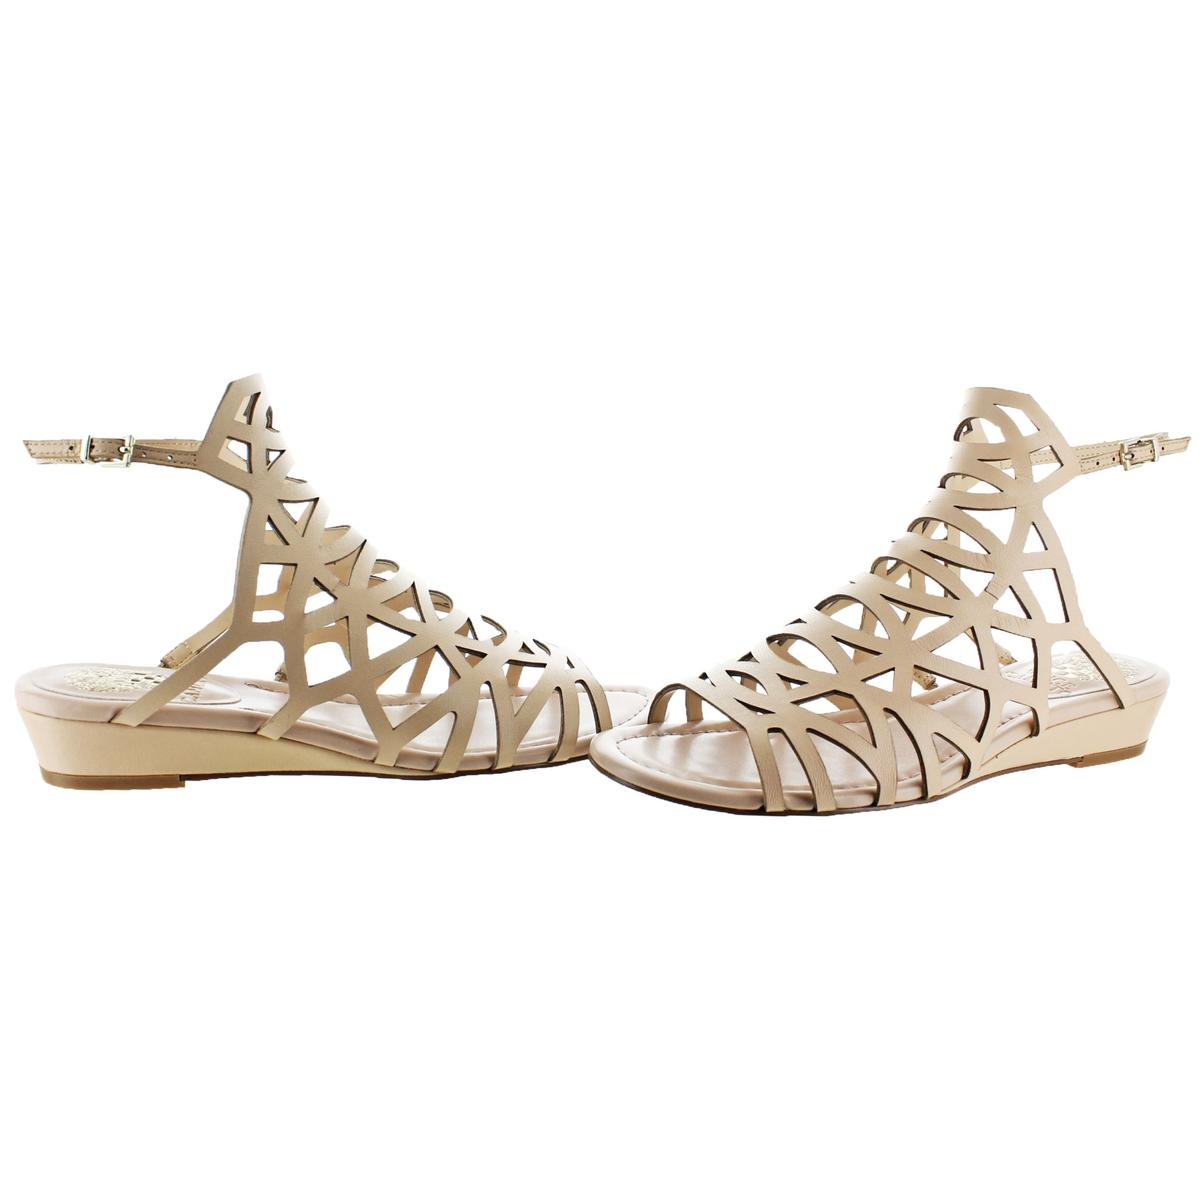 Vince-Camuto-Illana-Women-039-s-Leather-Strappy-Slingback-Caged-Sandal-Shoes thumbnail 10